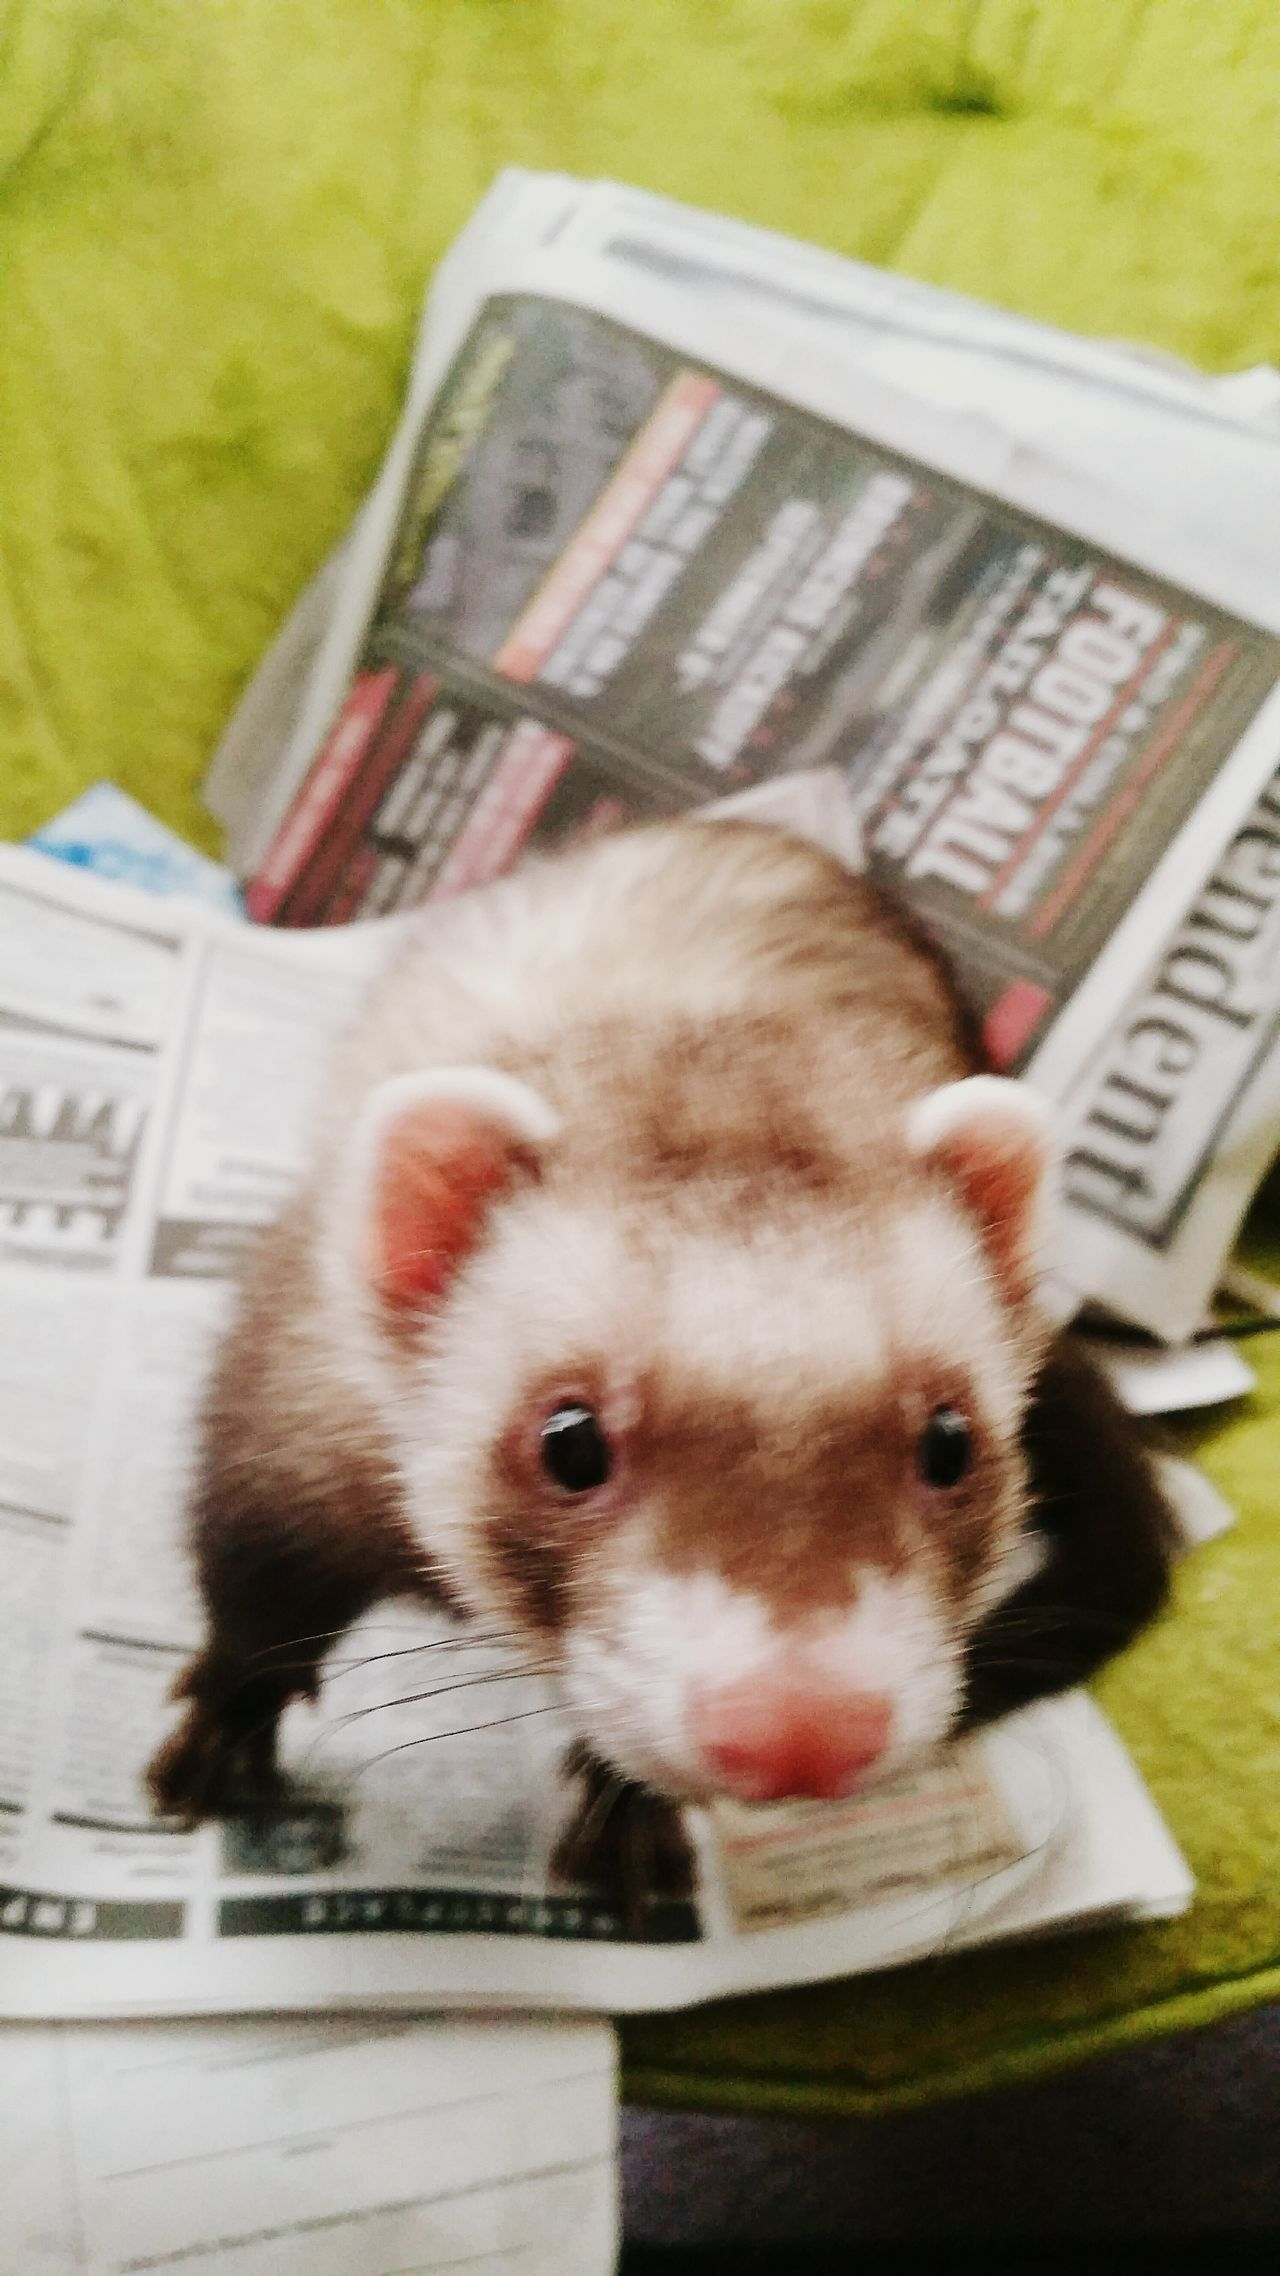 Act Fast Buddyferret Eyem Pets Busy Things To Stash Love My Ferret Friend Colorado Springs CO USA